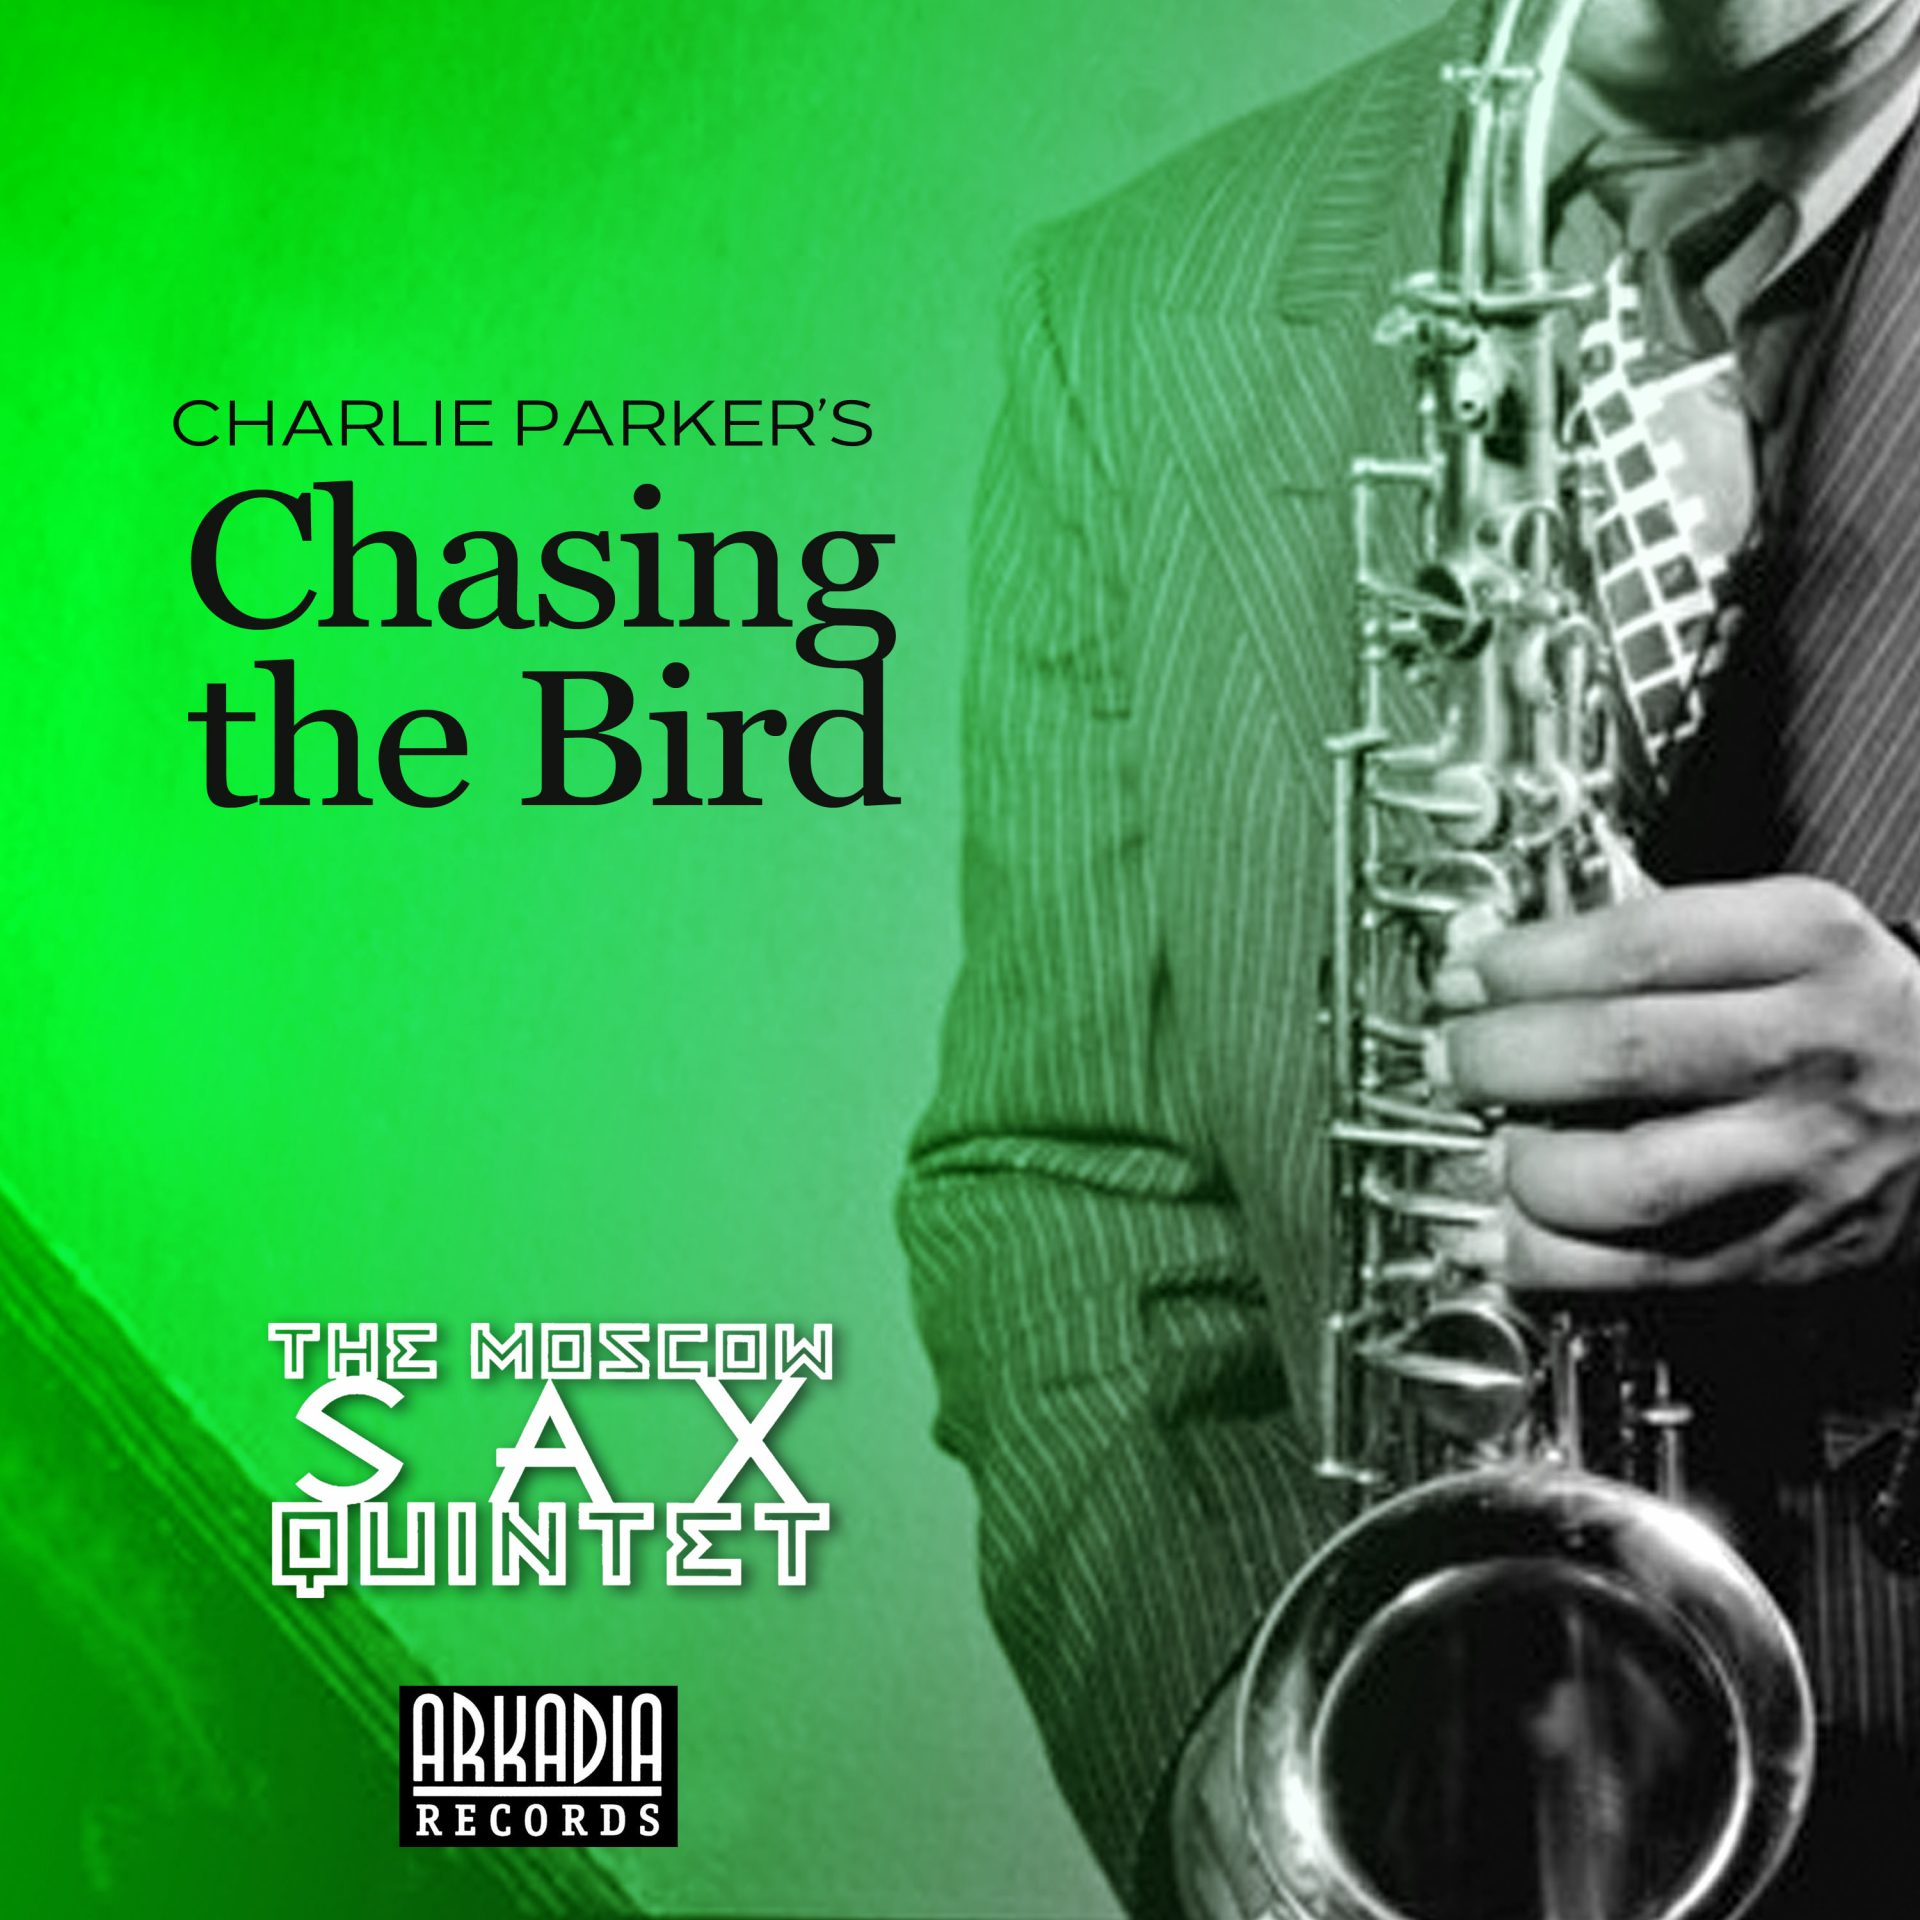 single 71161 moscow sax quintet Chasing the bird v2 FINAL scaled